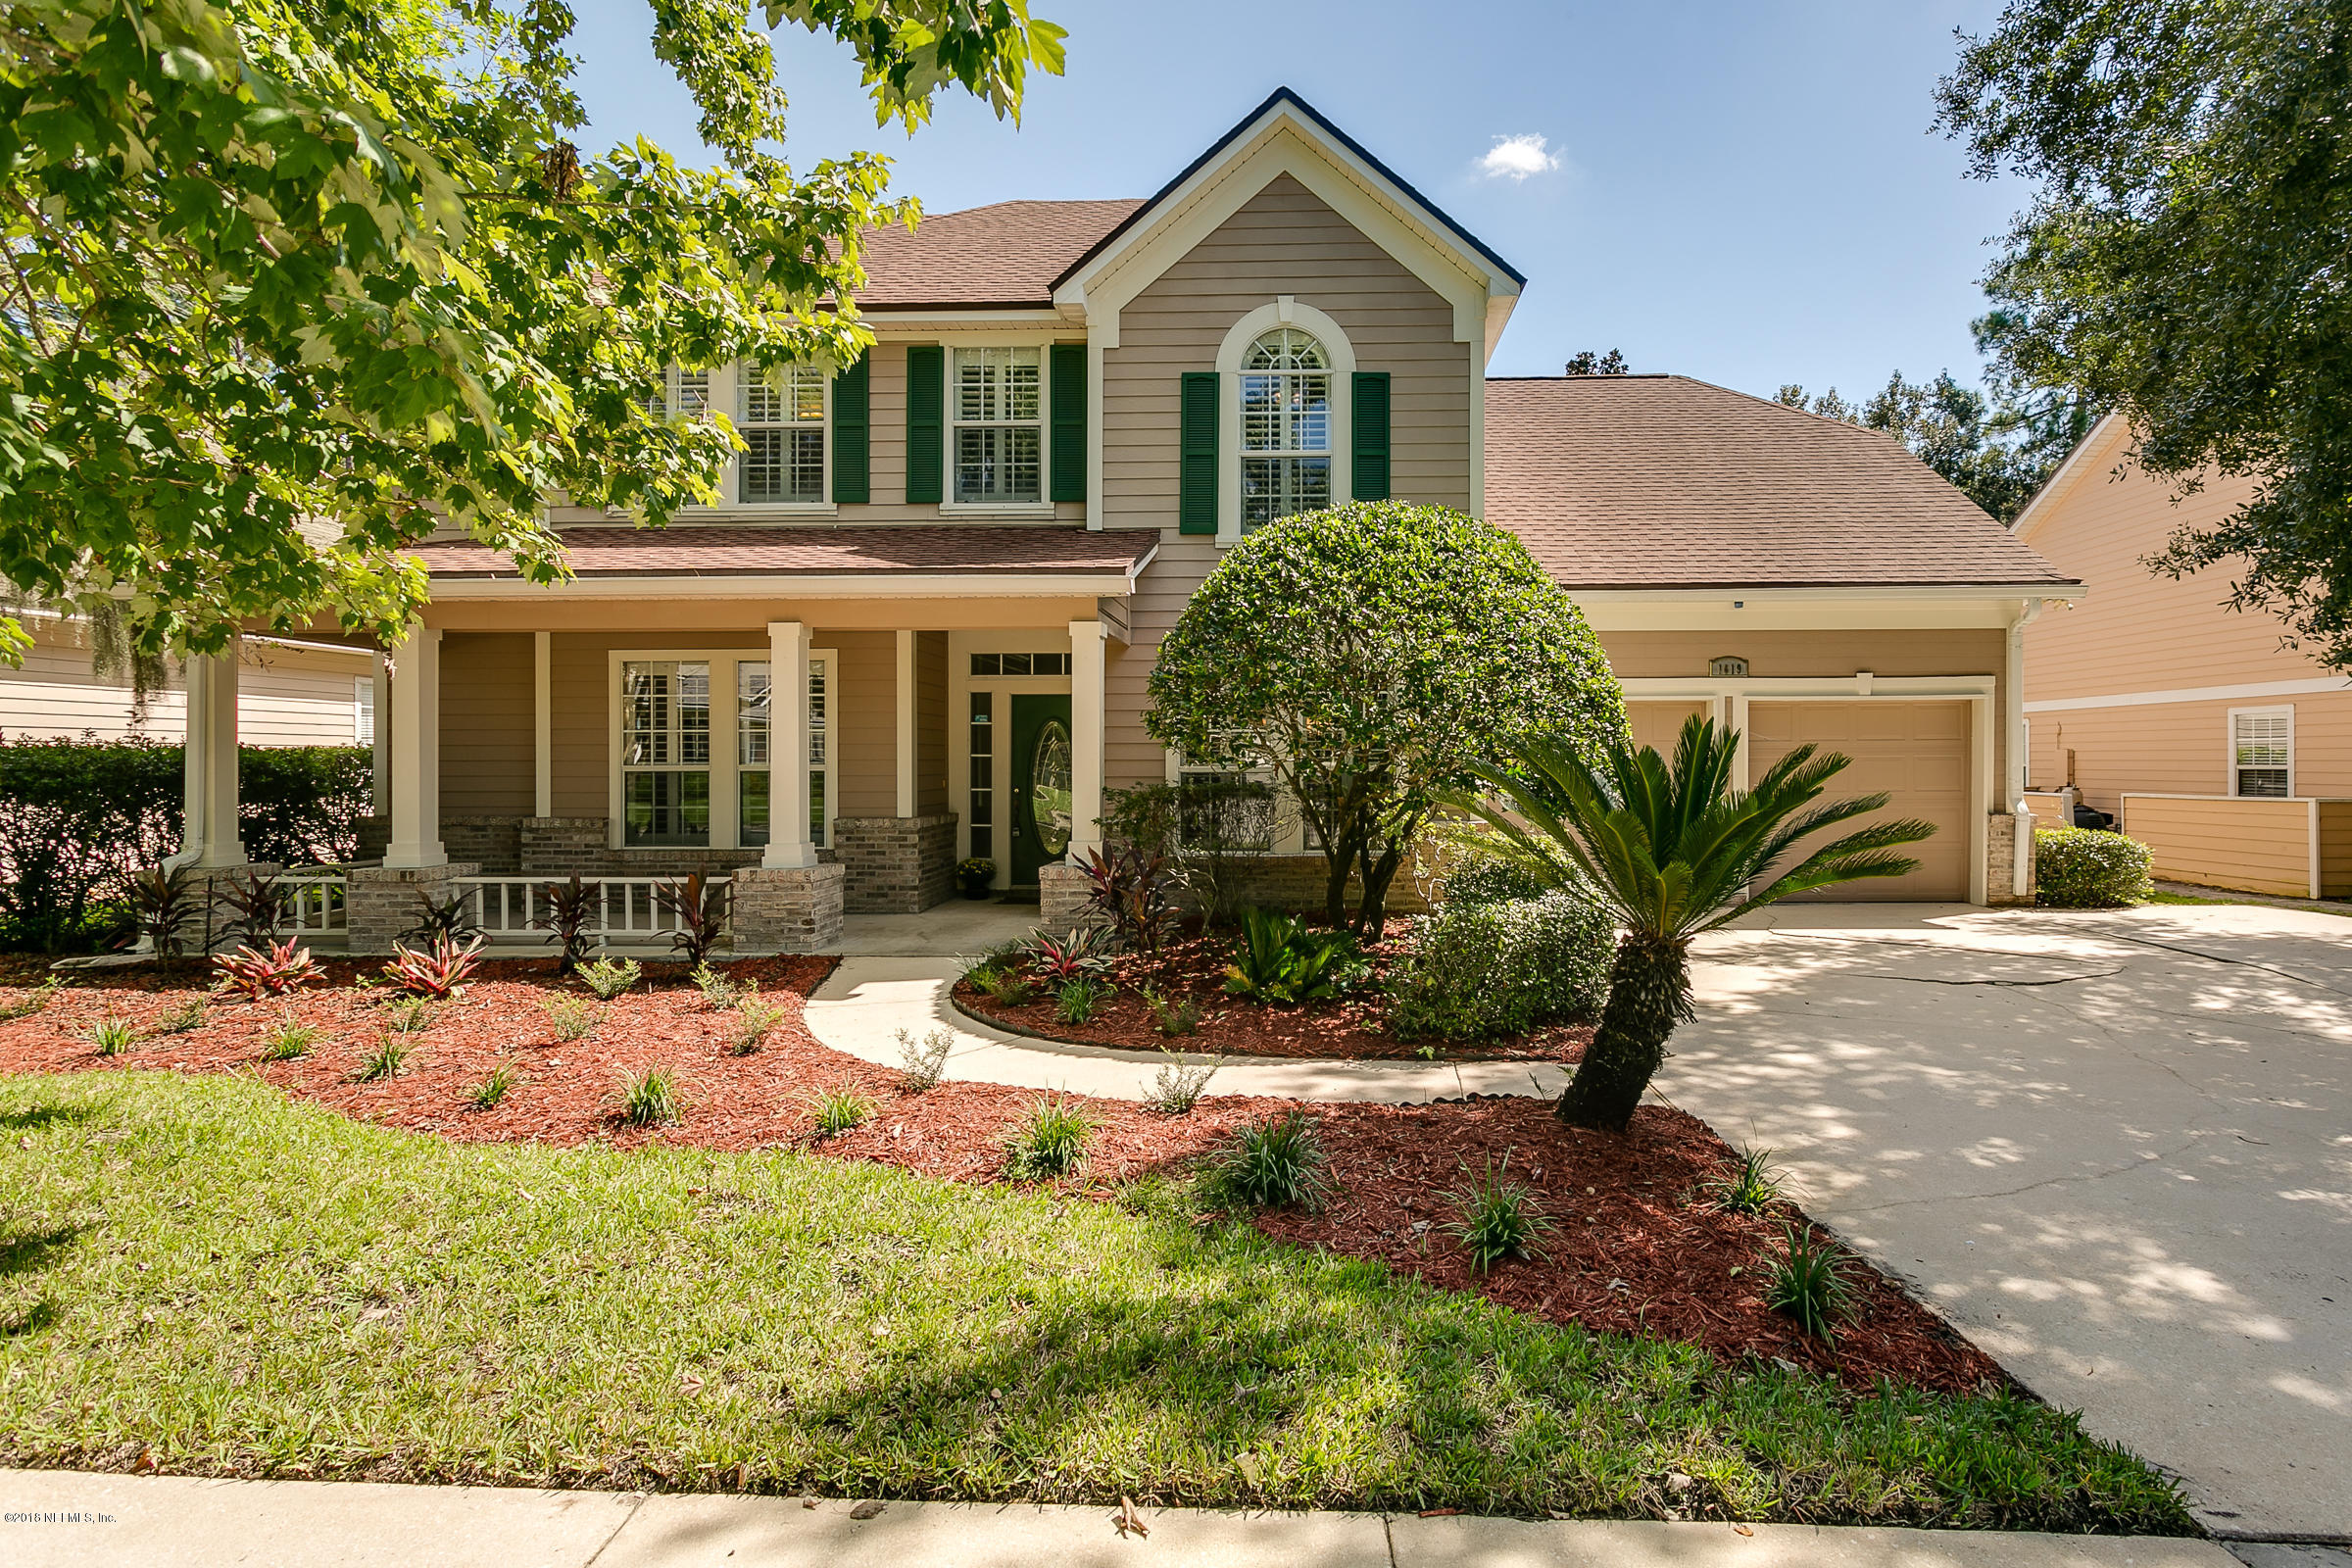 1619 HAWKS NEST, FLEMING ISLAND, FLORIDA 32003, 6 Bedrooms Bedrooms, ,3 BathroomsBathrooms,Residential - single family,For sale,HAWKS NEST,961259